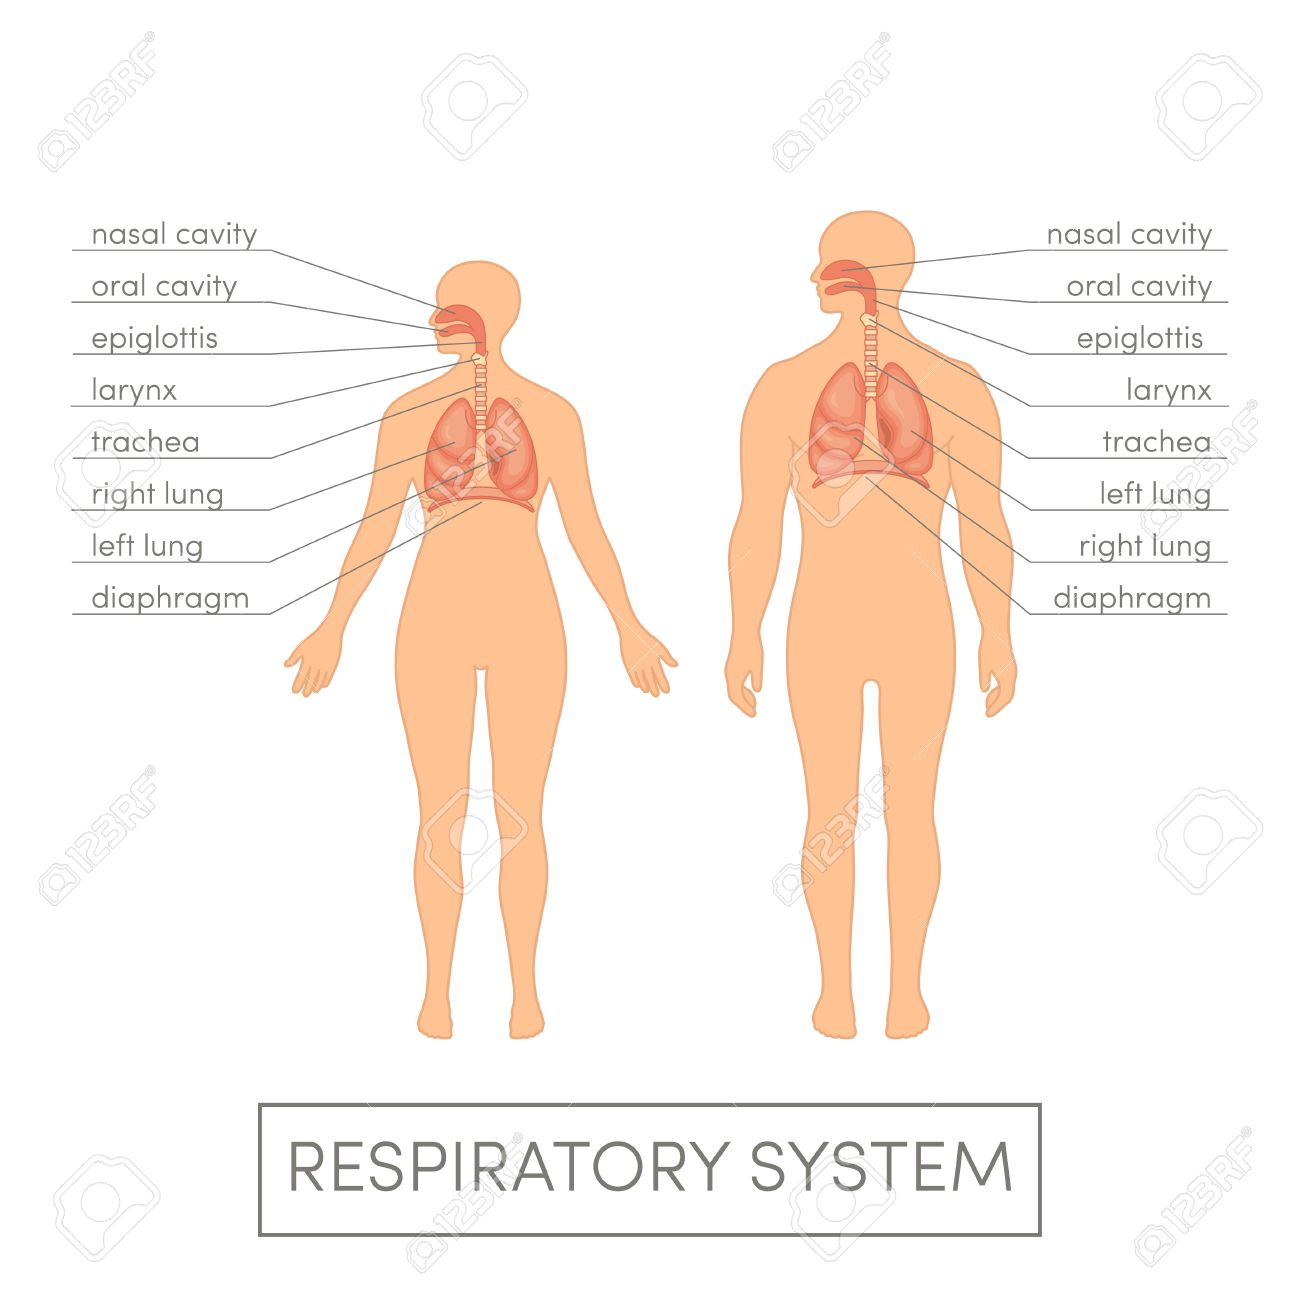 Respiratory System Of A Human. Cartoon Illustration For Medical ...